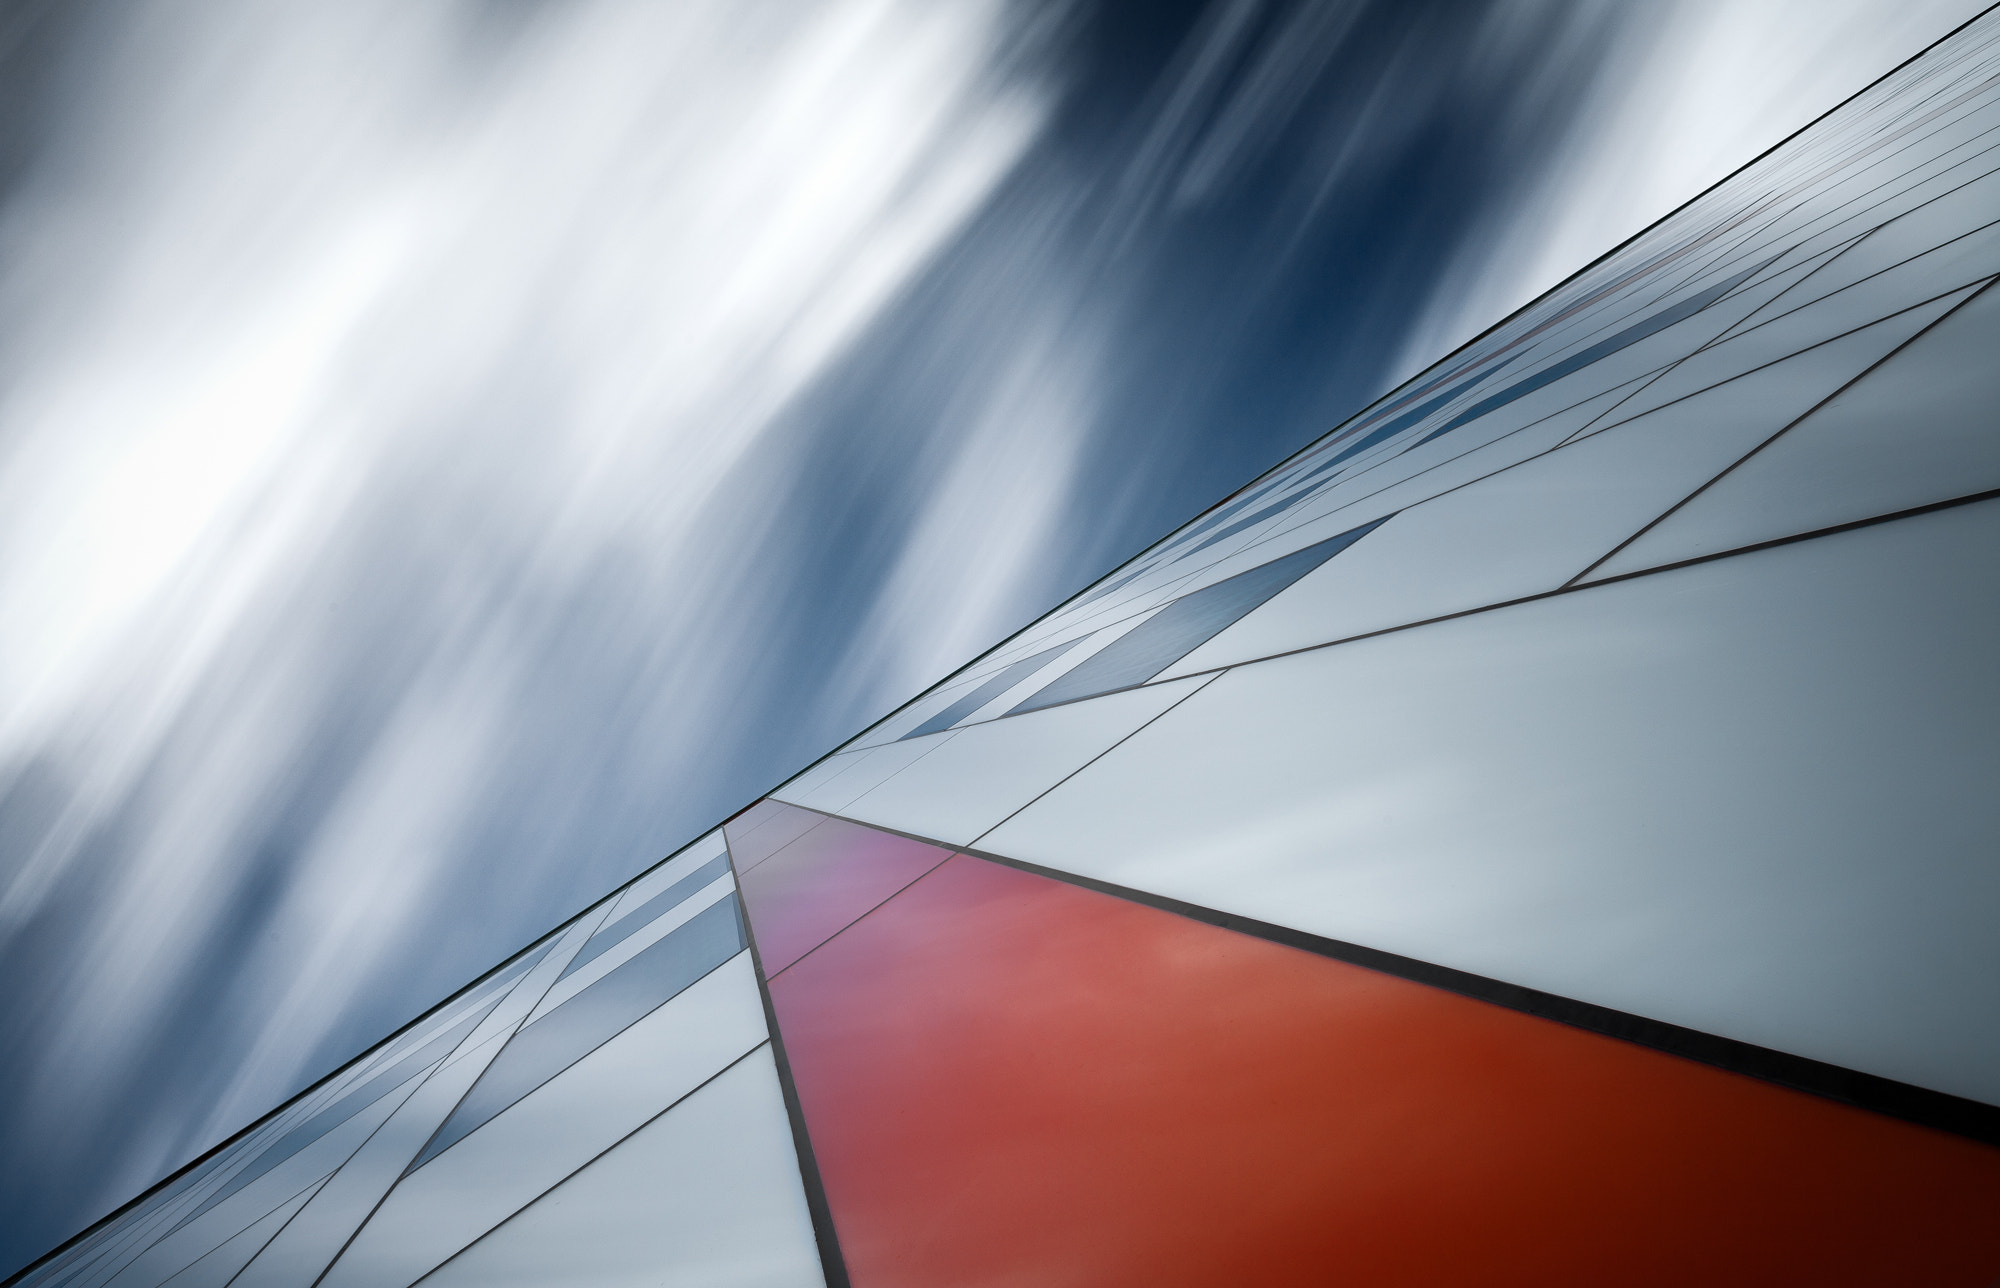 Photograph Follow the Line by Philipp Richert on 500px